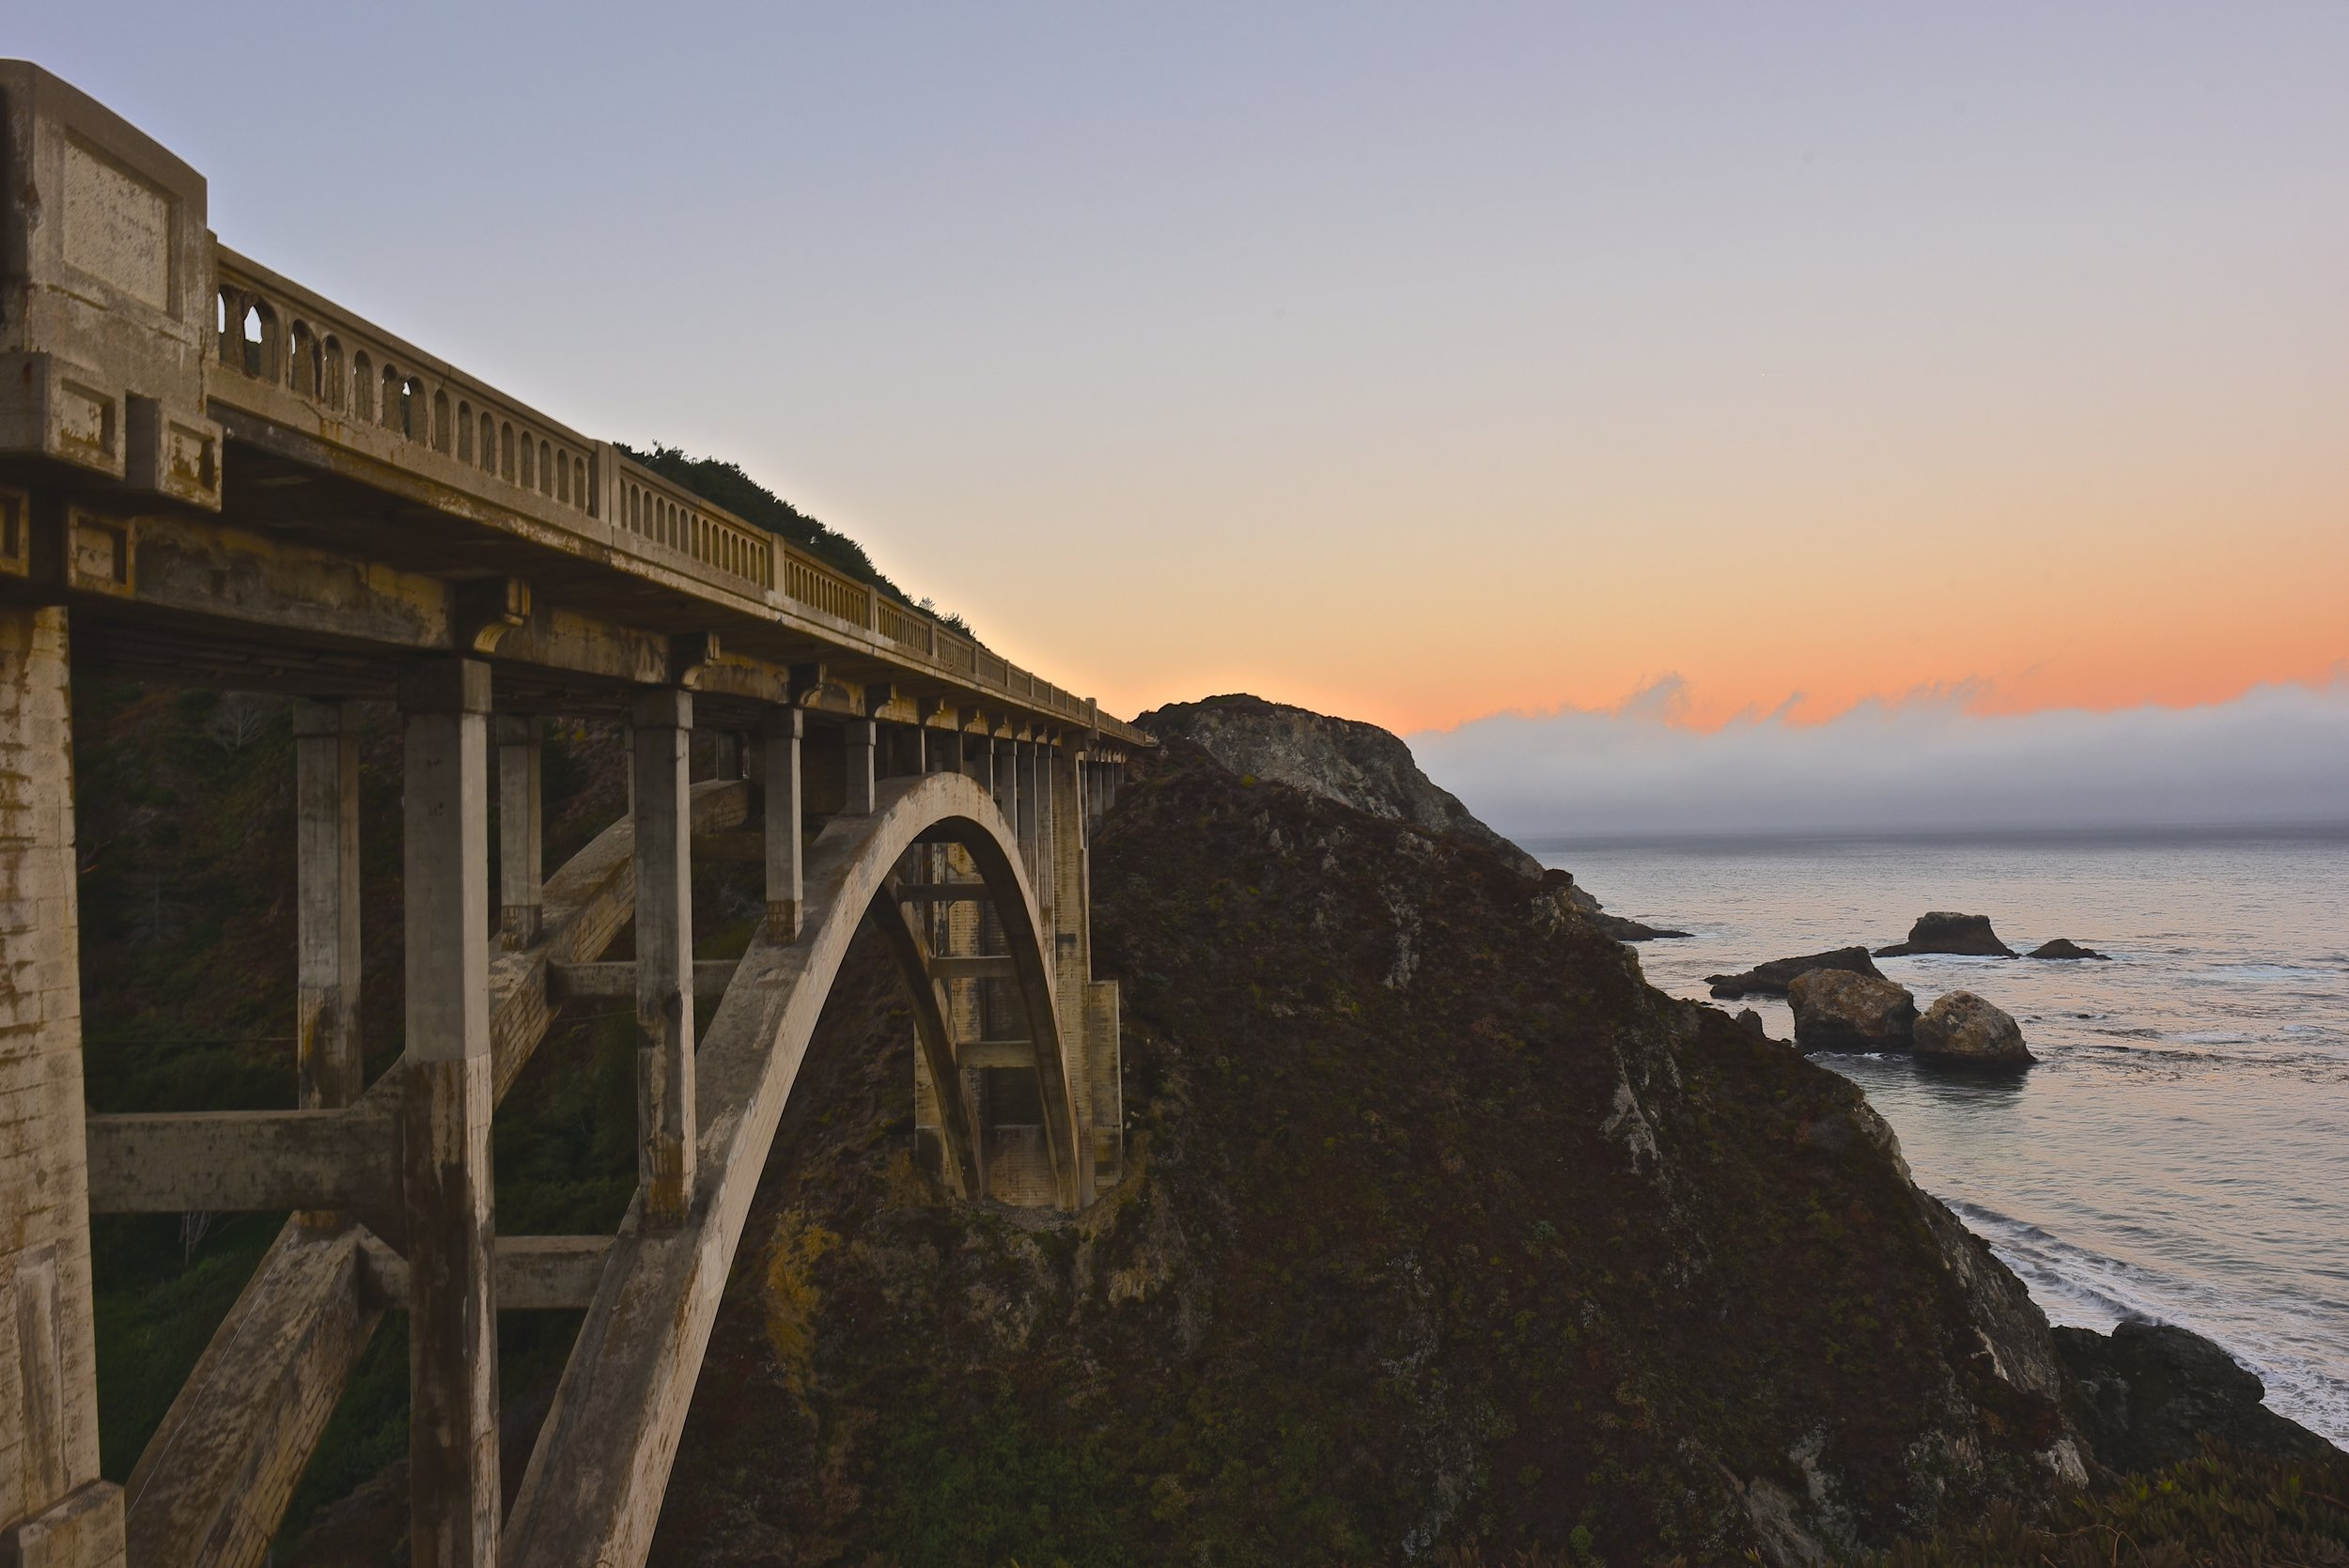 Rocky Creek Bridge at sunrise in Big Sur, California